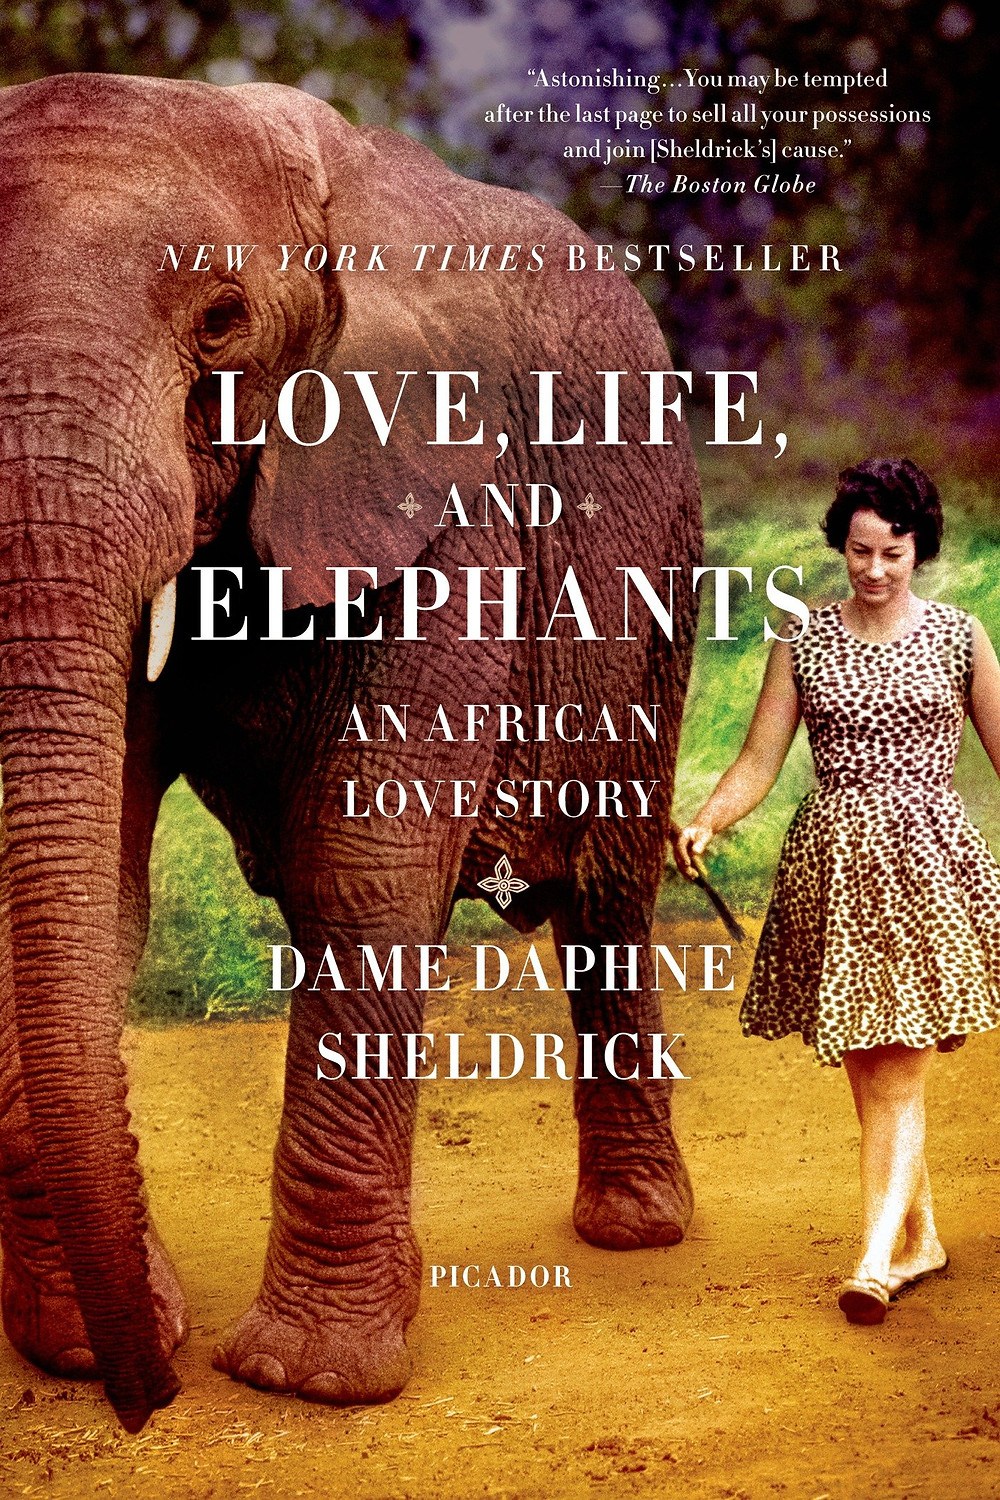 Love, Life, and Elephants by Dame Daphne Sheldrick